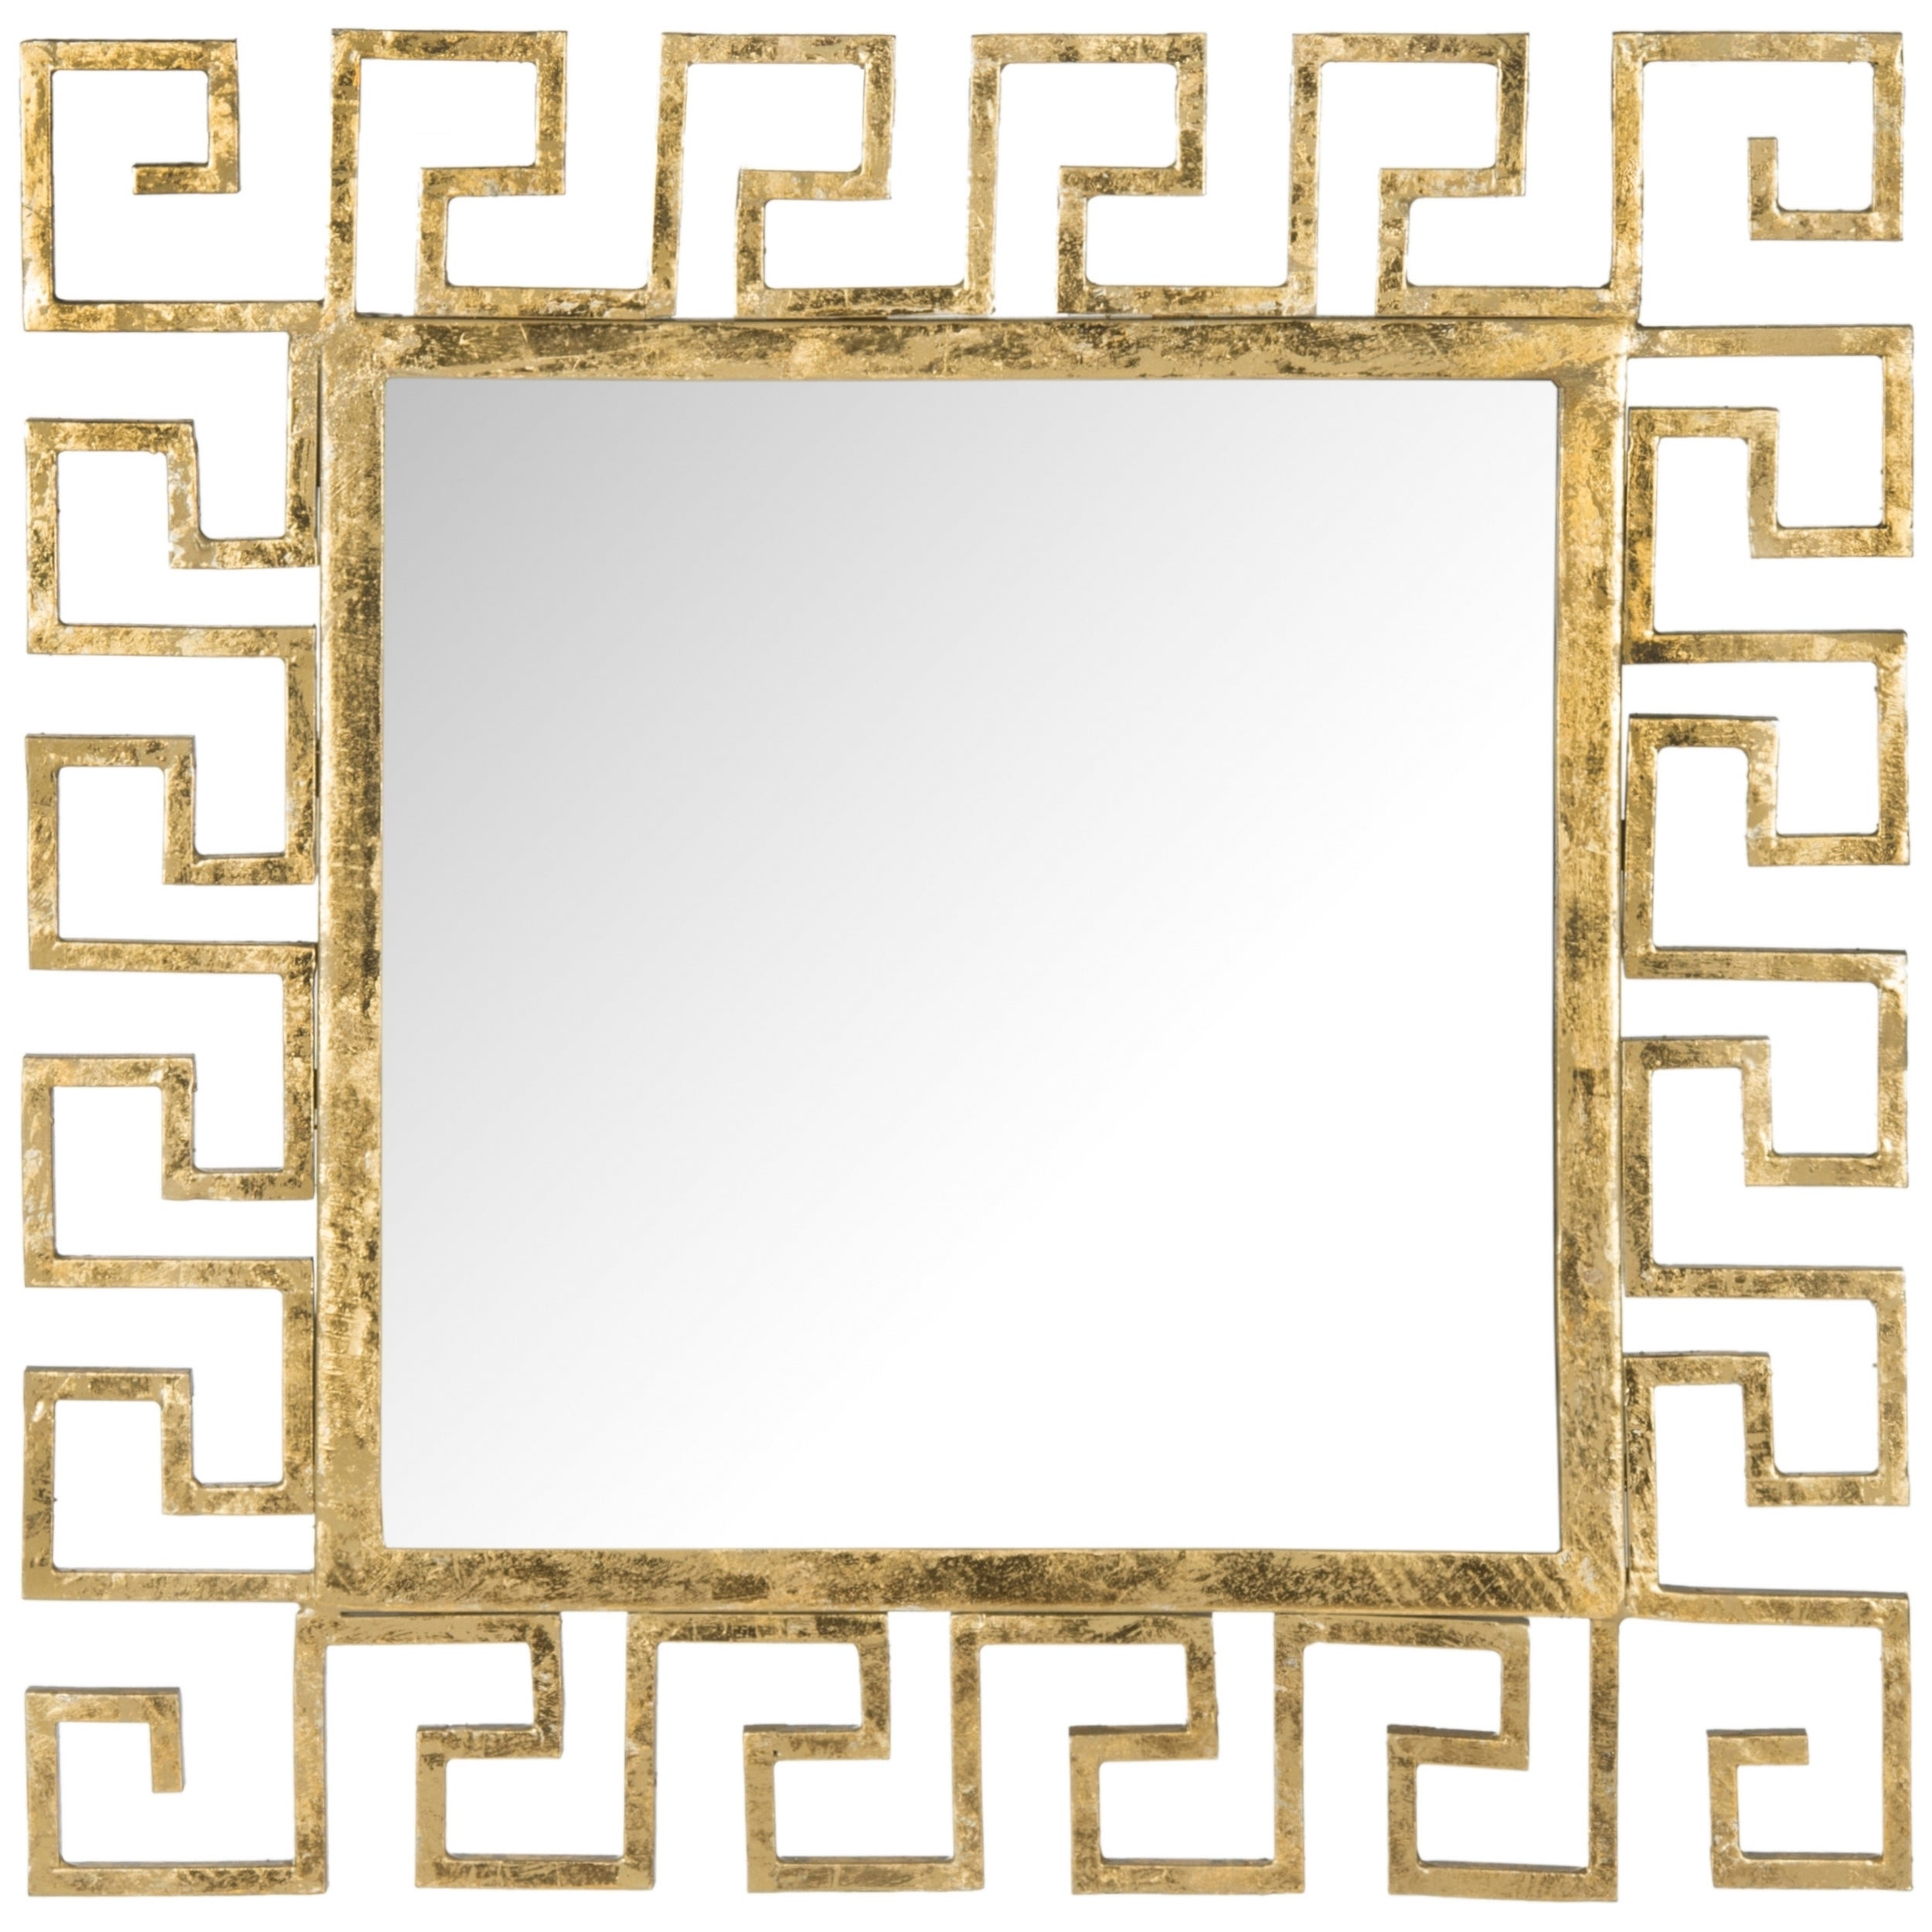 Safavieh calliope greek key antique gold 23 inch mirror free safavieh calliope greek key antique gold 23 inch mirror free shipping today overstock 17338367 jeuxipadfo Gallery